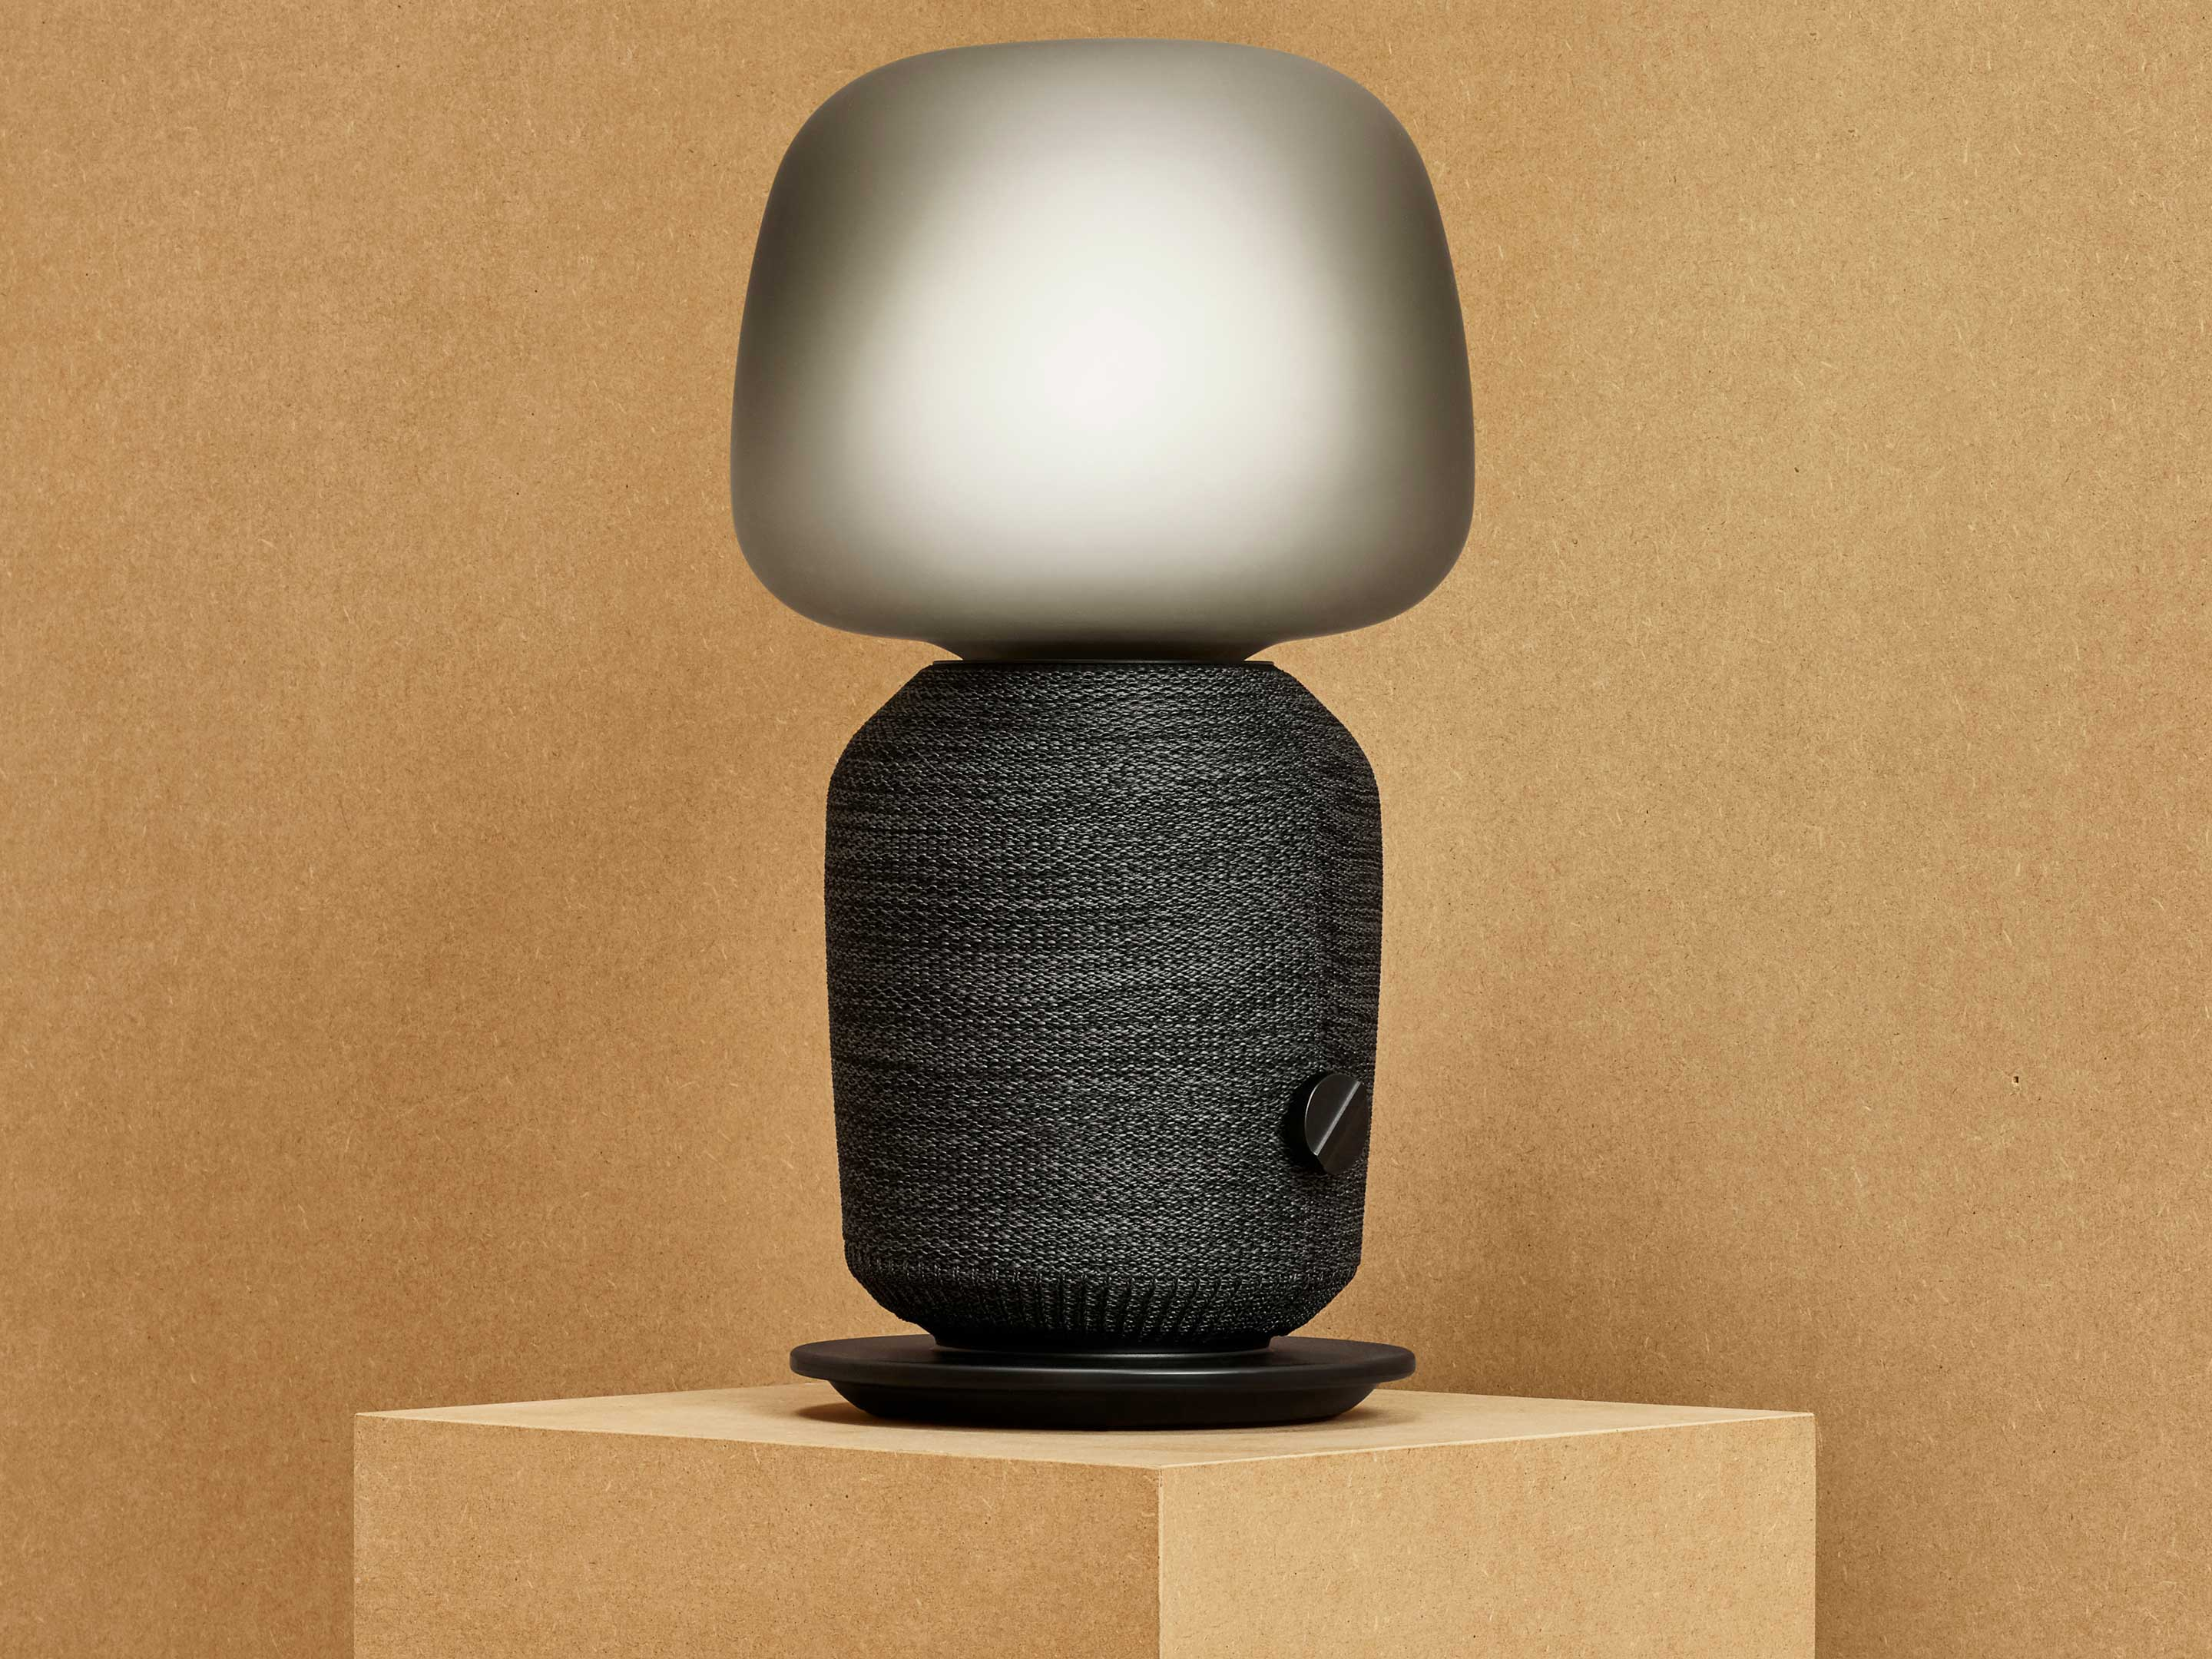 Ikea Symfonisk table lamp speaker